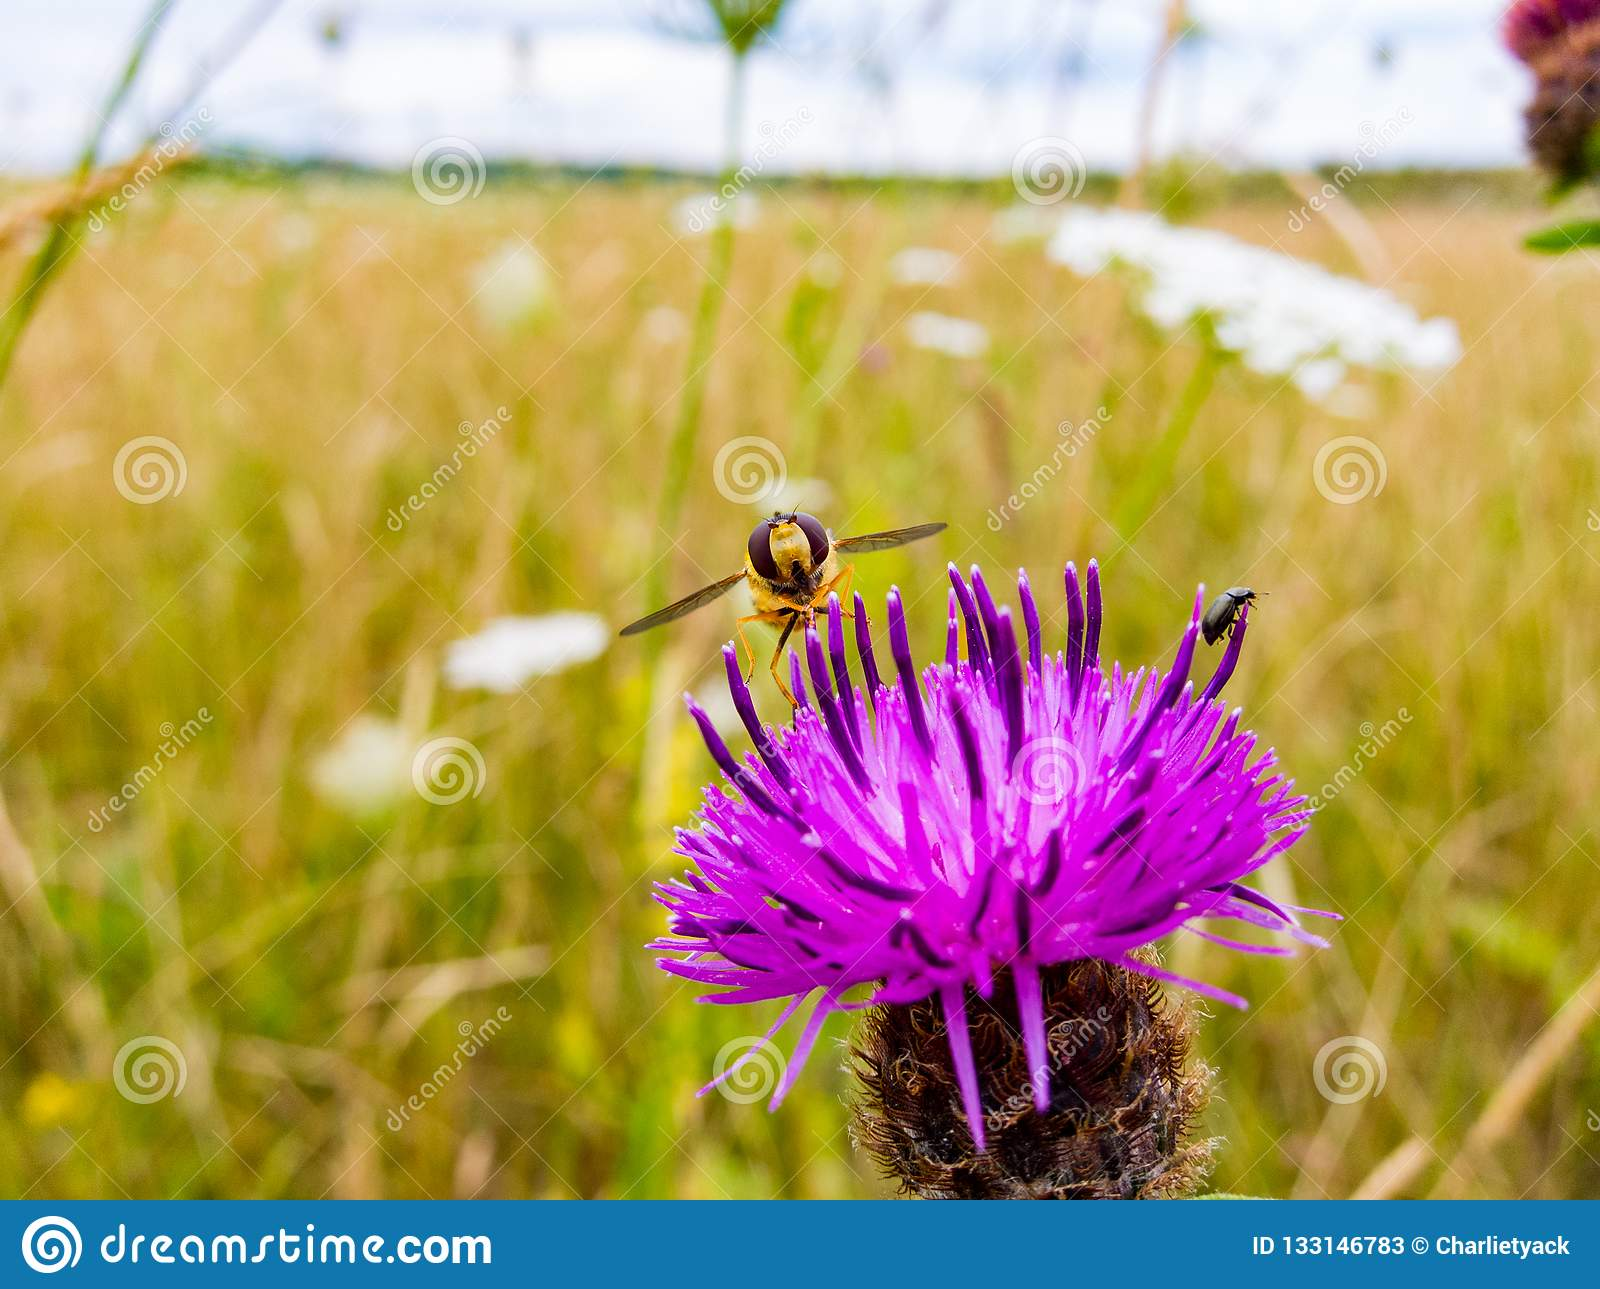 Hoverfly resting on a pink / purple thistle flower head